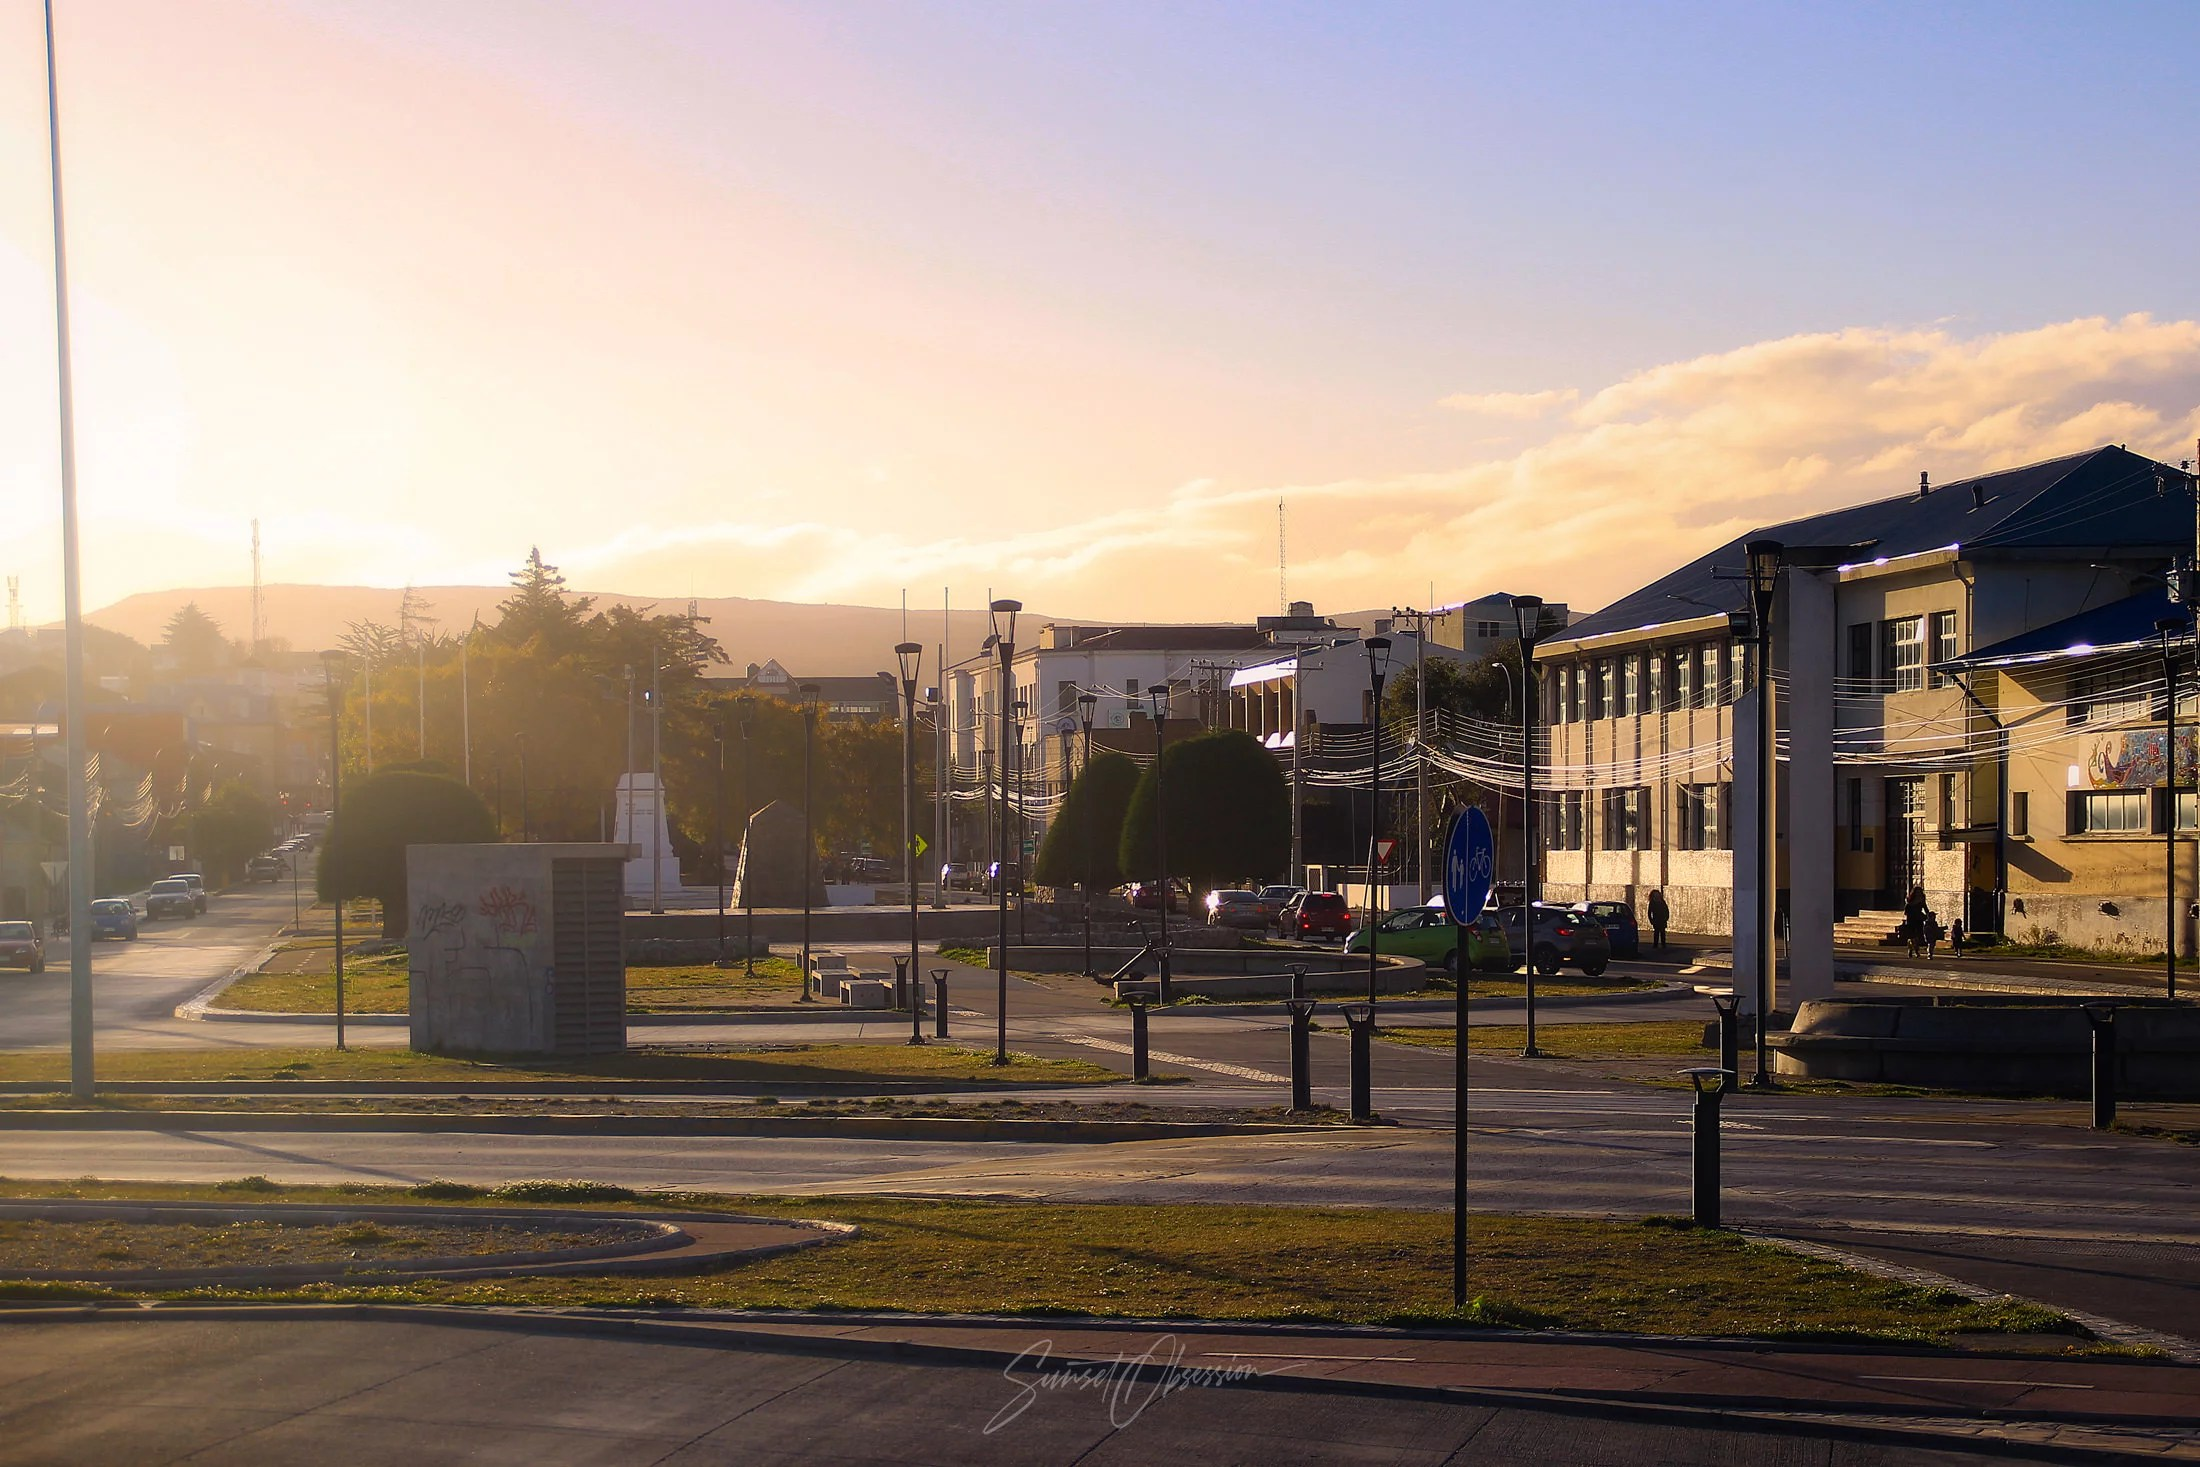 There are several excellent photo locations in Punta Arenas